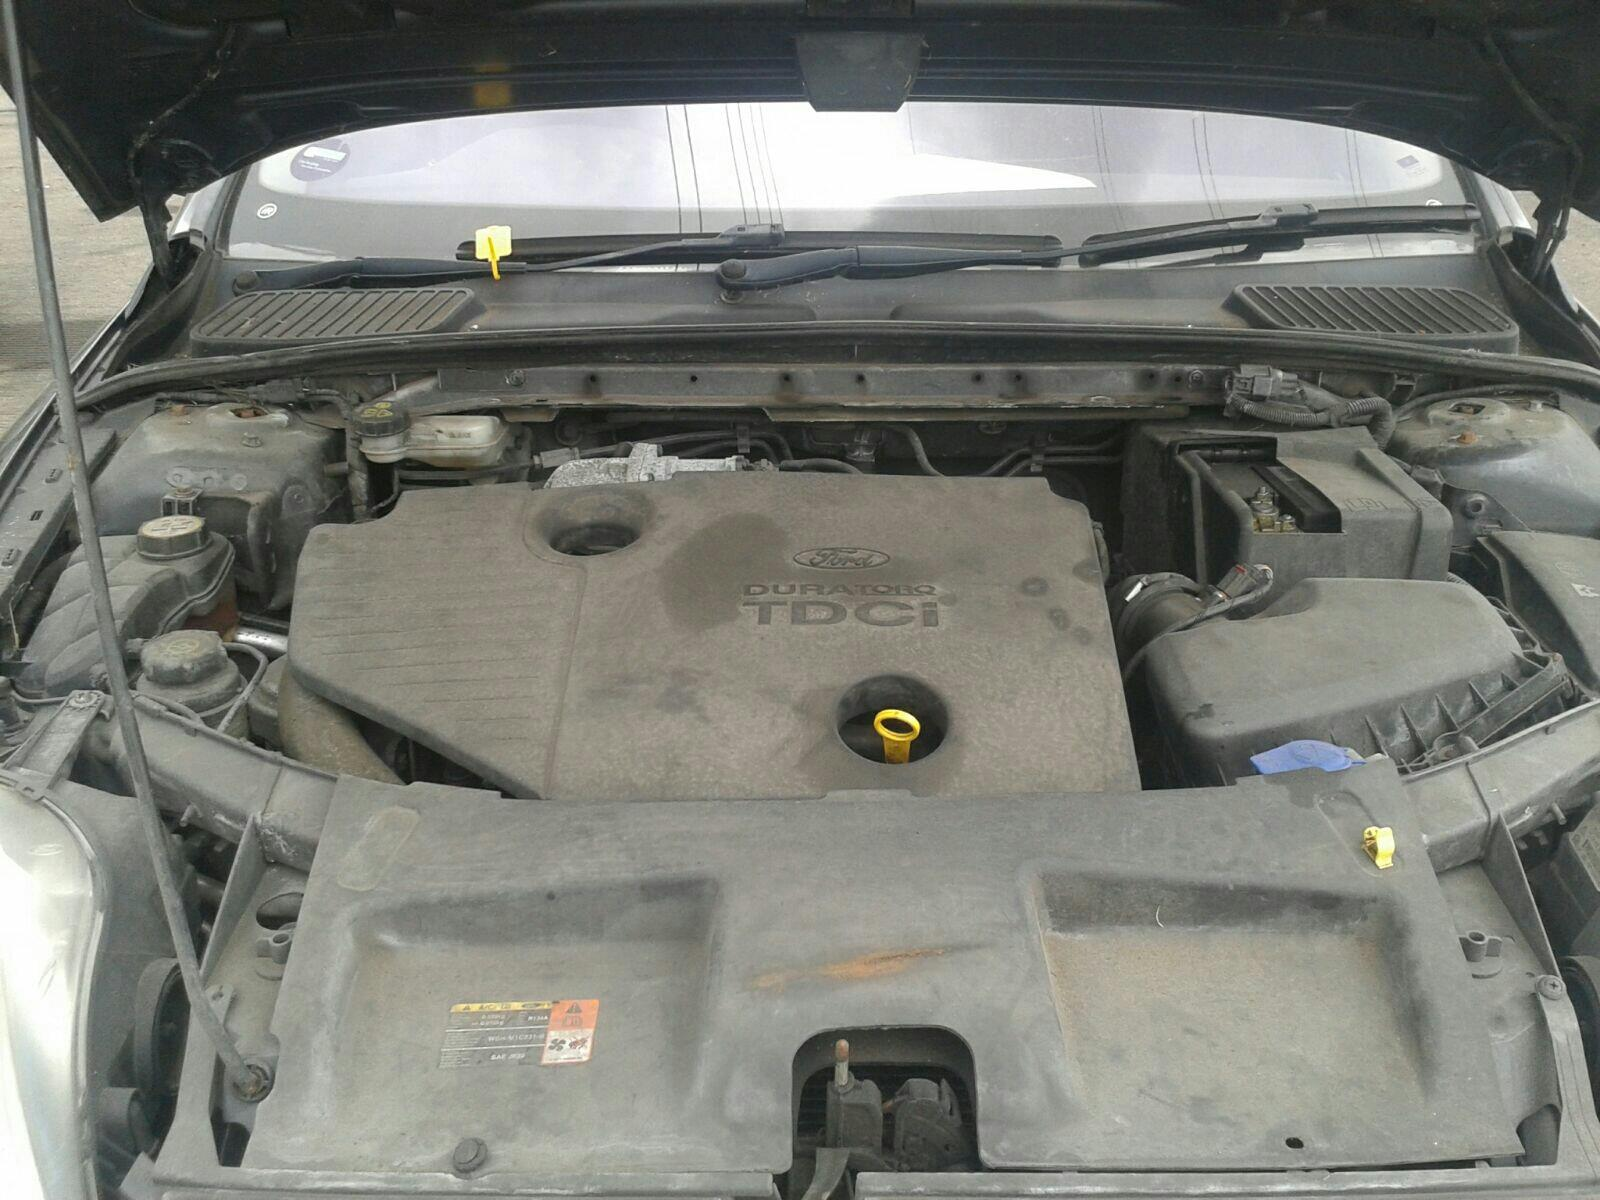 Ford Mondeo 2007 To 2010 Fuse Box Diesel Manual For Sale From Location